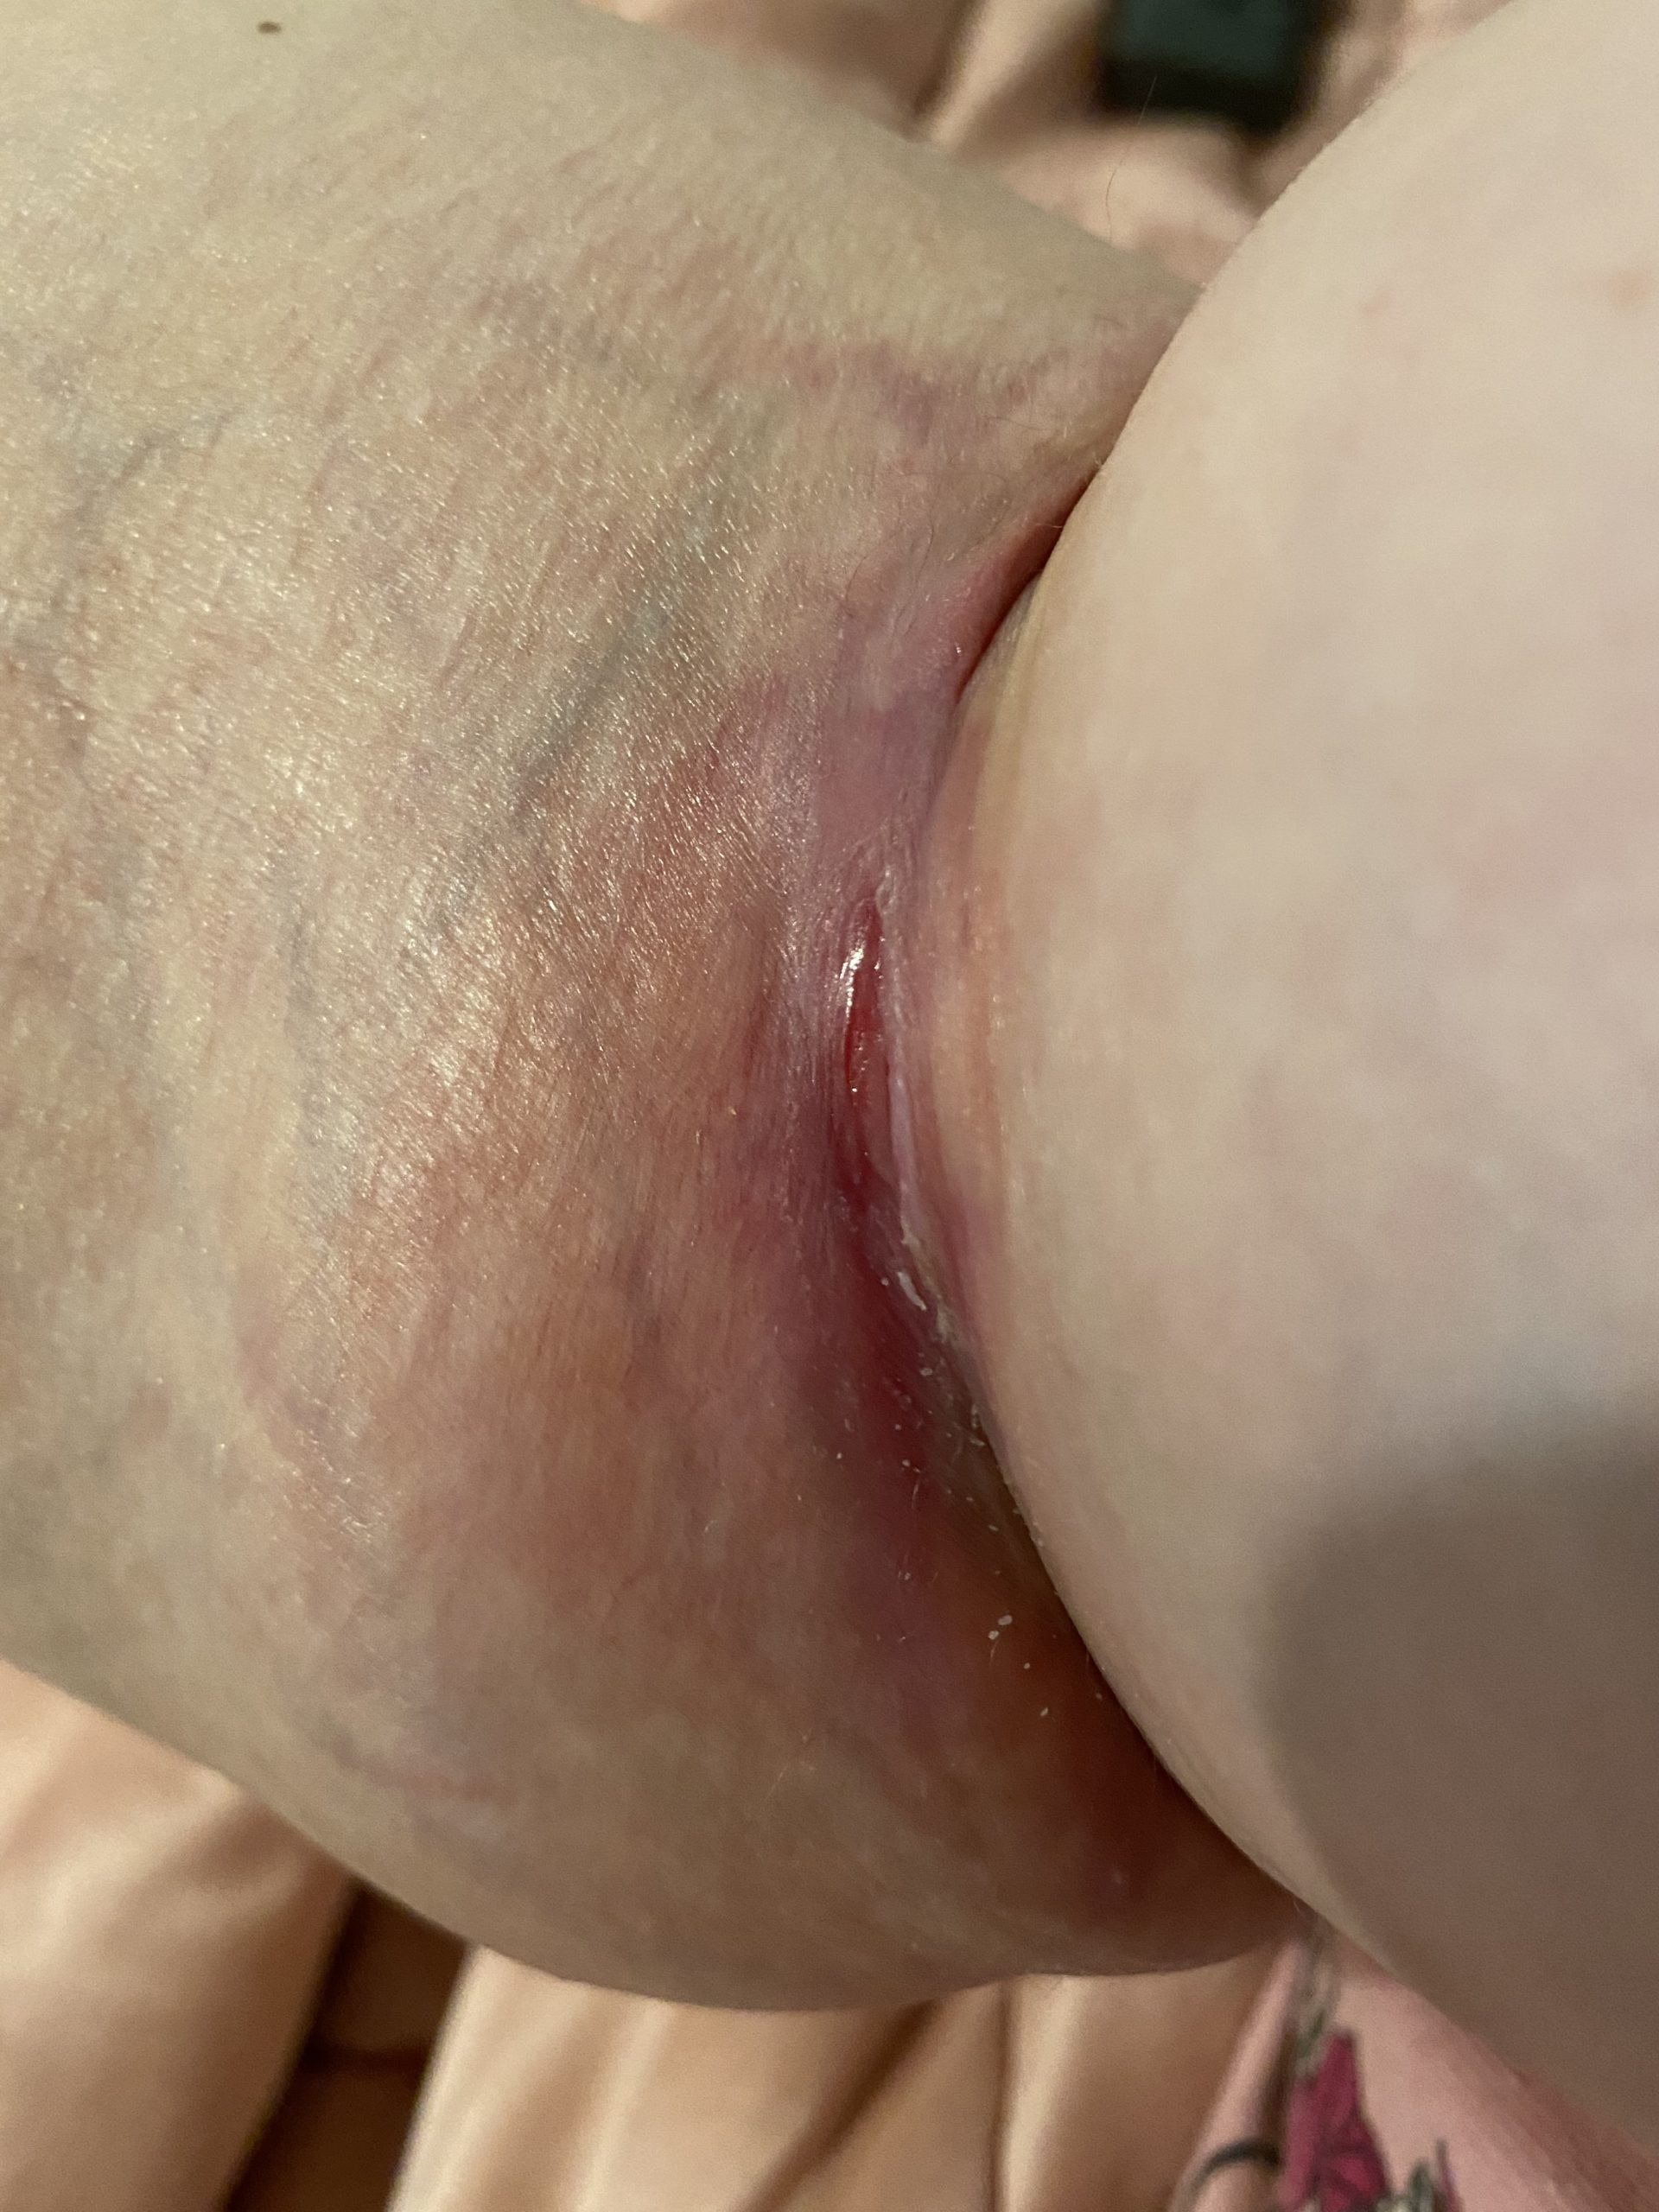 Right Arm with a wound in the crease near the elbow.